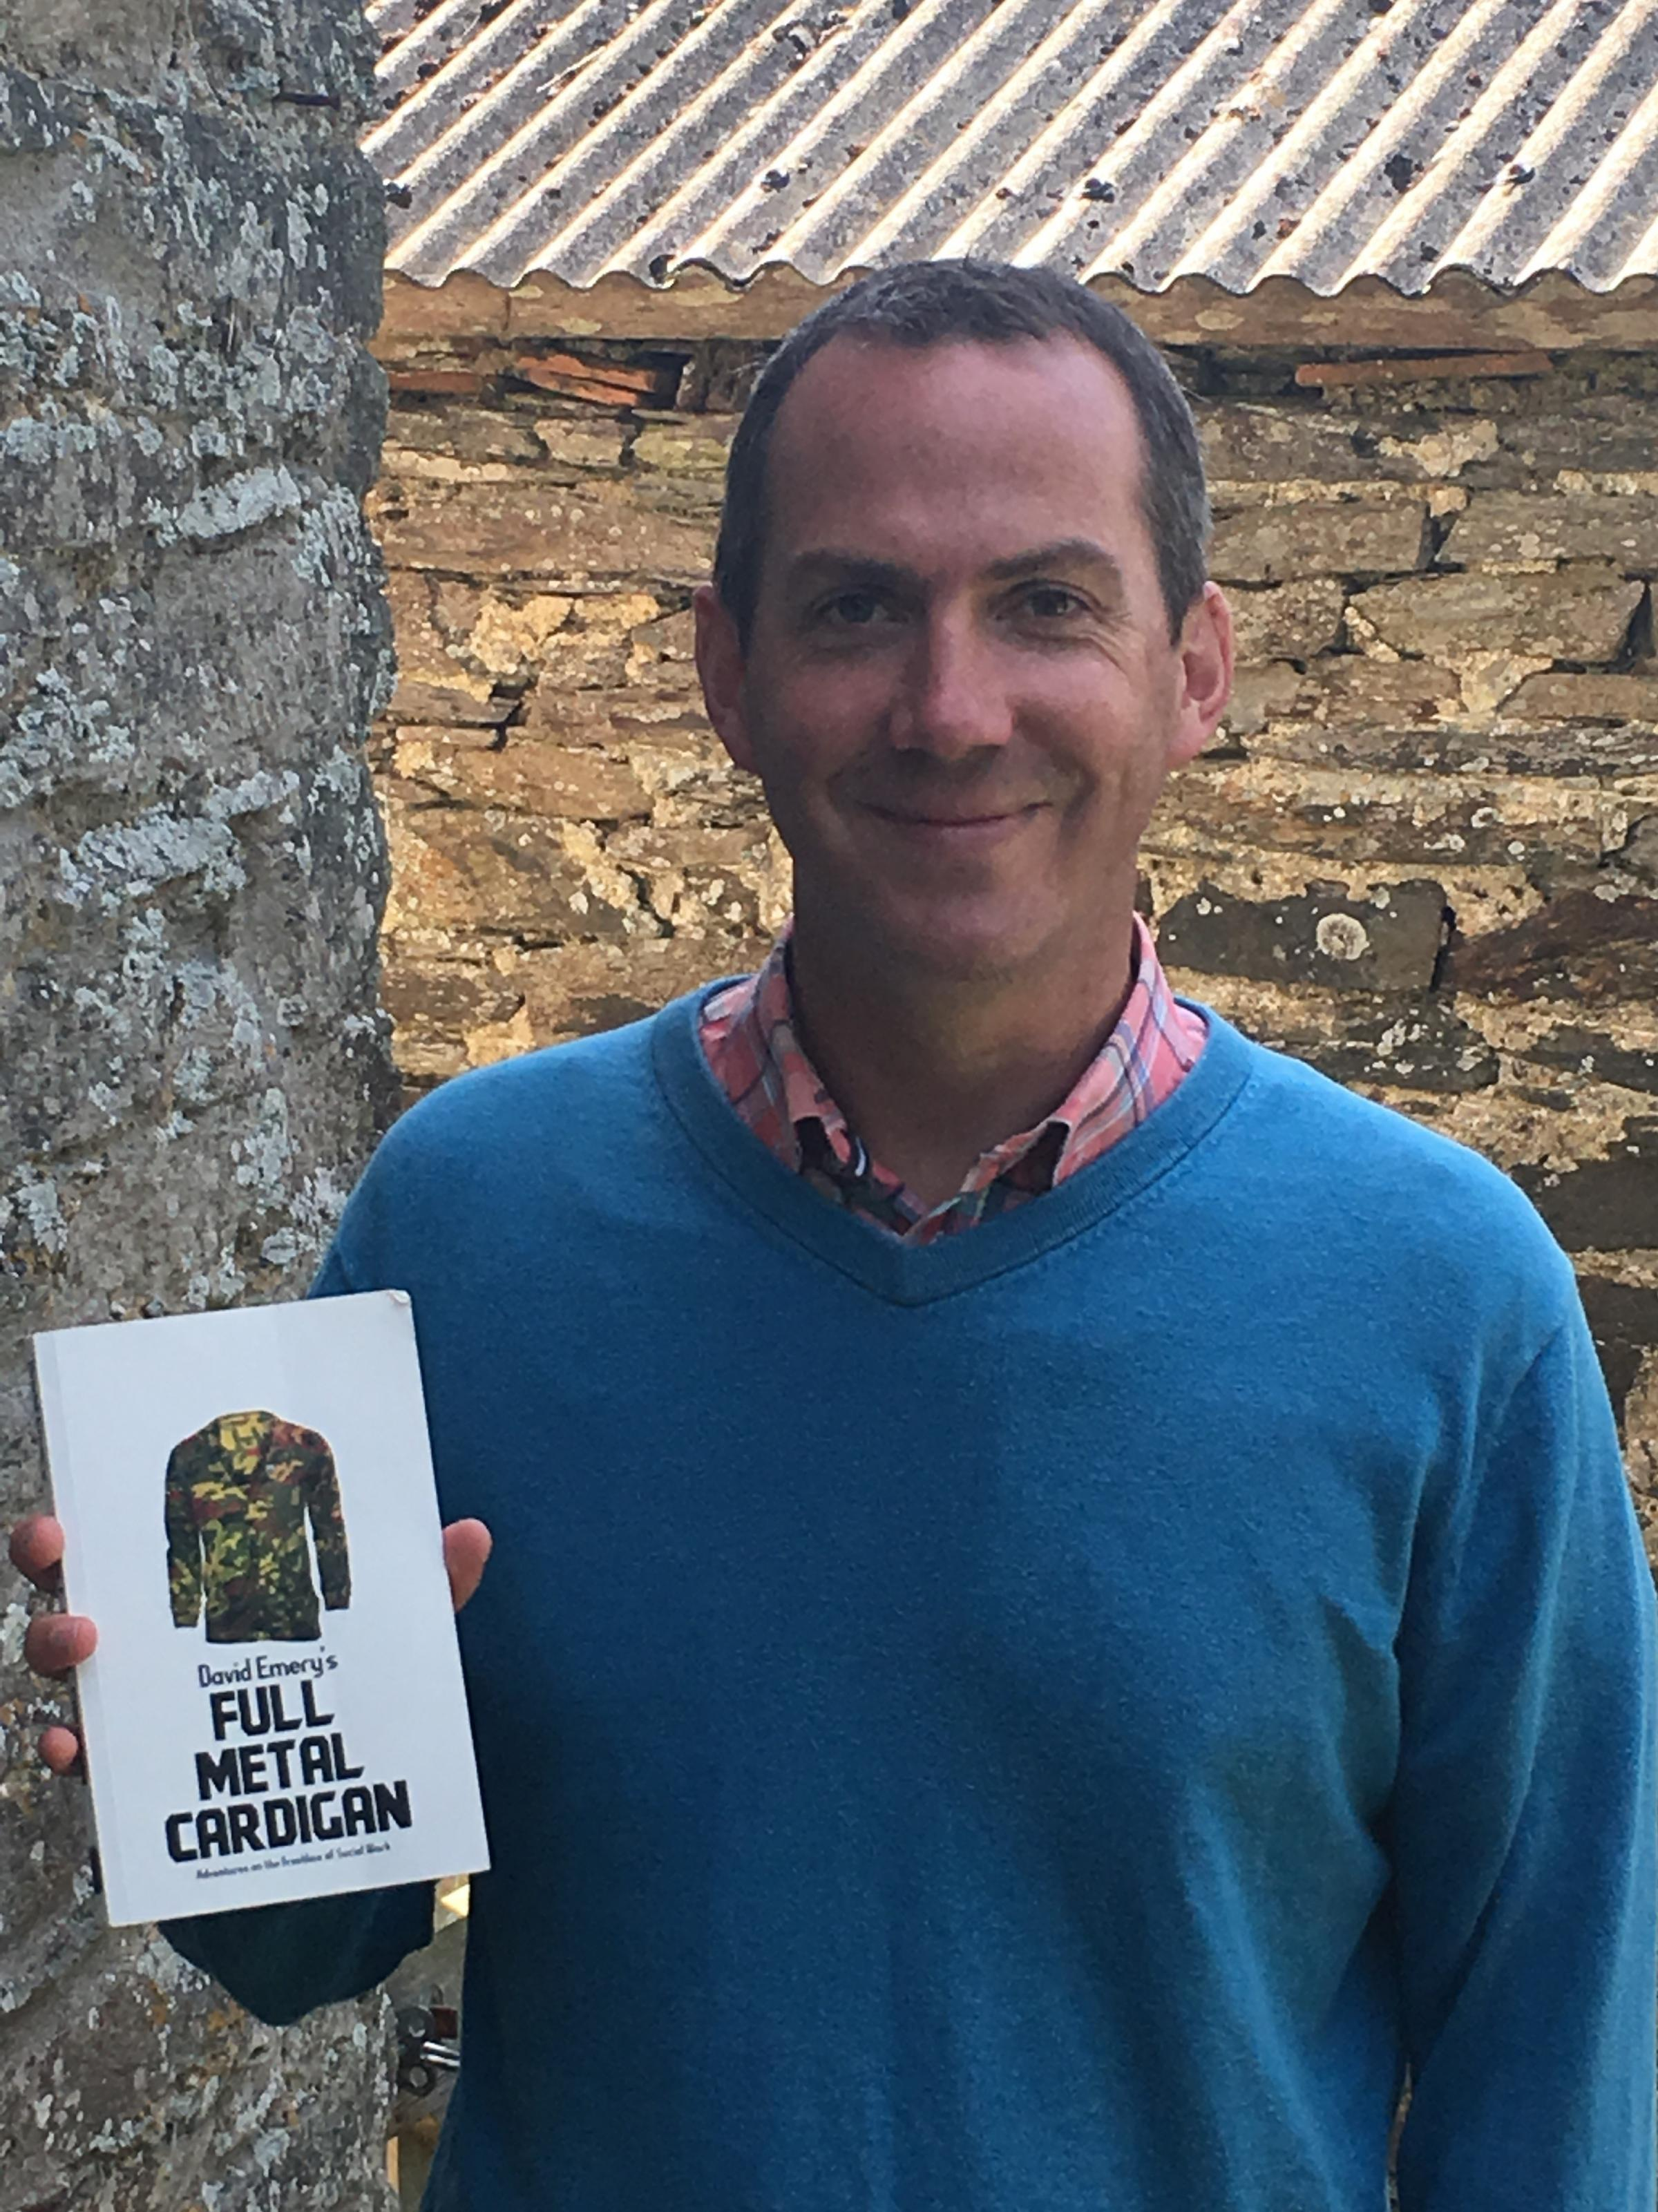 DEBUT: David Emery with a copy of his first book